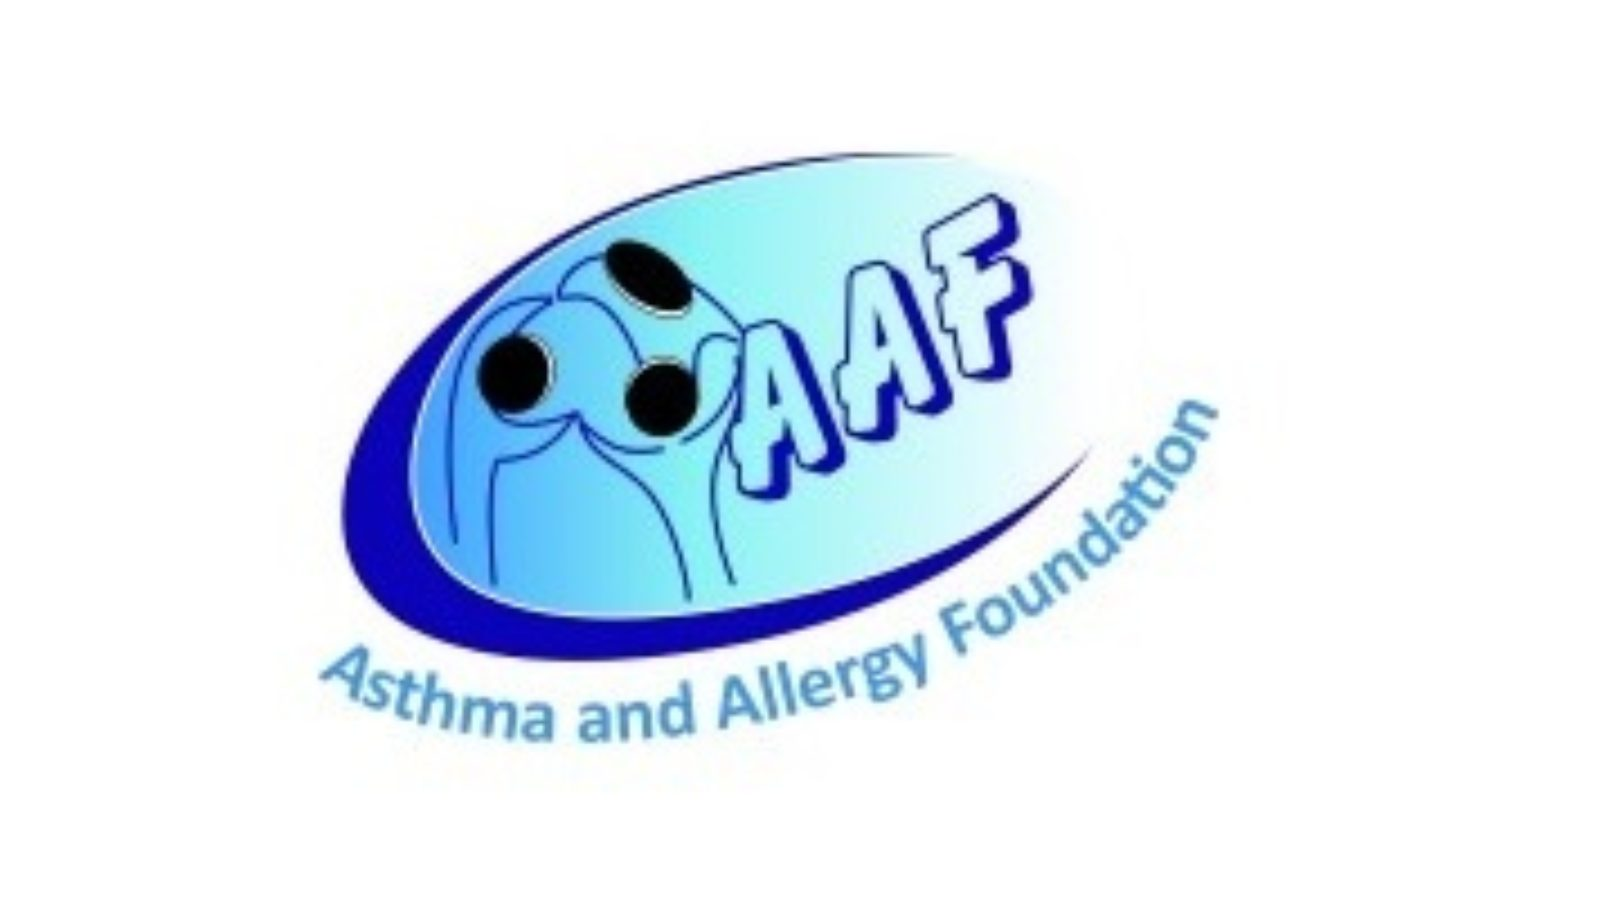 Asthma charity addresses common asthma myths and misconceptions on World Asthma Day 2021